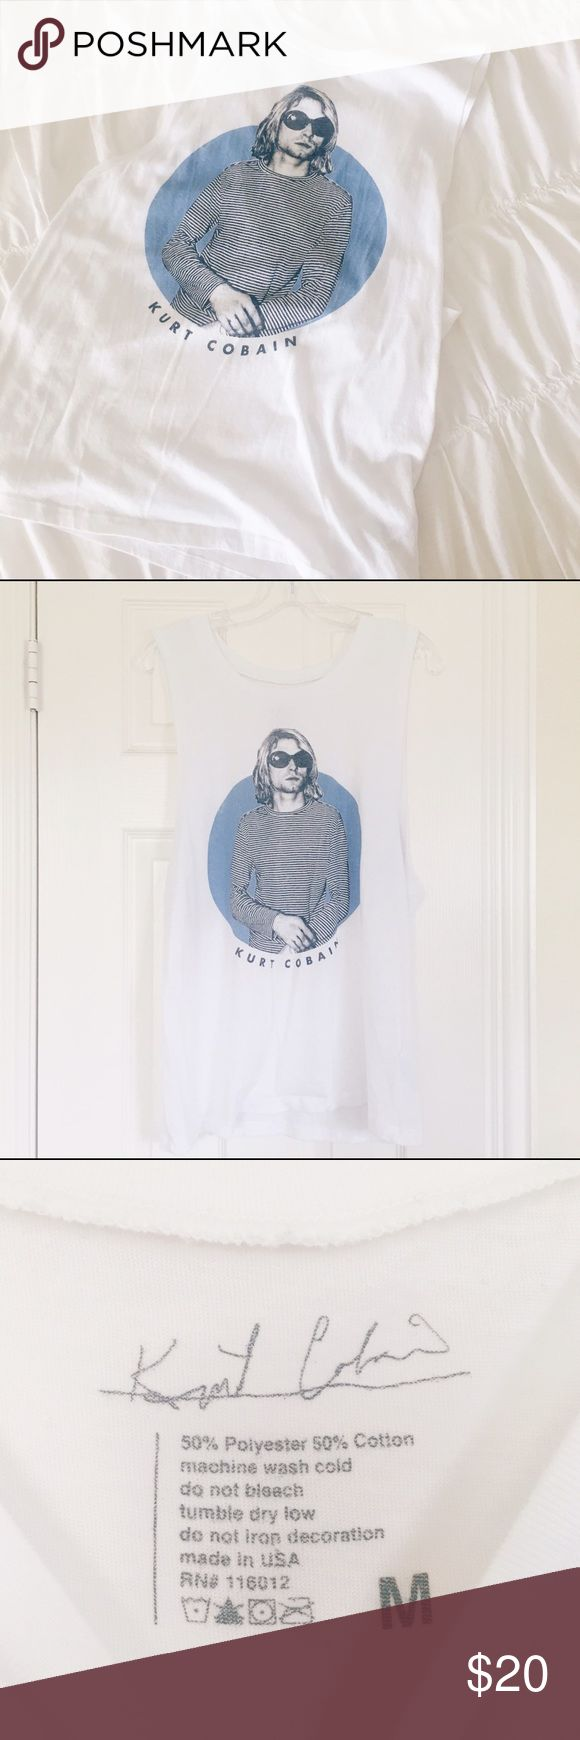 🎶 Kurt Cobain Muscle Tee Worn once. Size medium but can be worn by a smaller size as a long / oversized fit. Looks great with bralette and leggings for casual wear. Purchased at Urban Outfitters Urban Outfitters Tops Muscle Tees